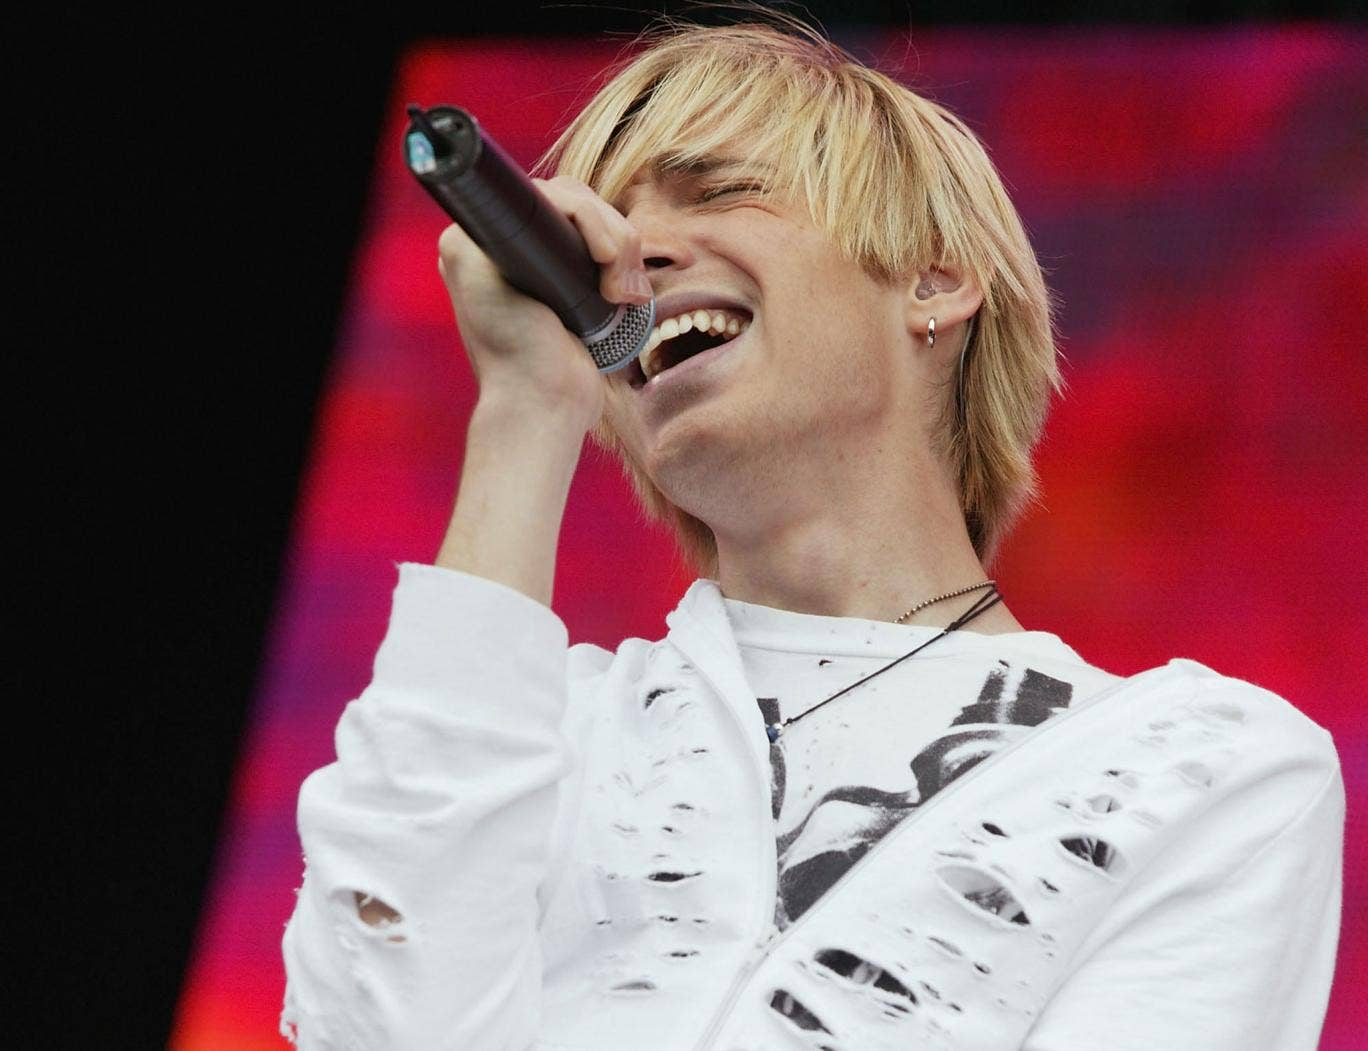 Alex Band was apparently only spared death after telling his captors he was about to become a father